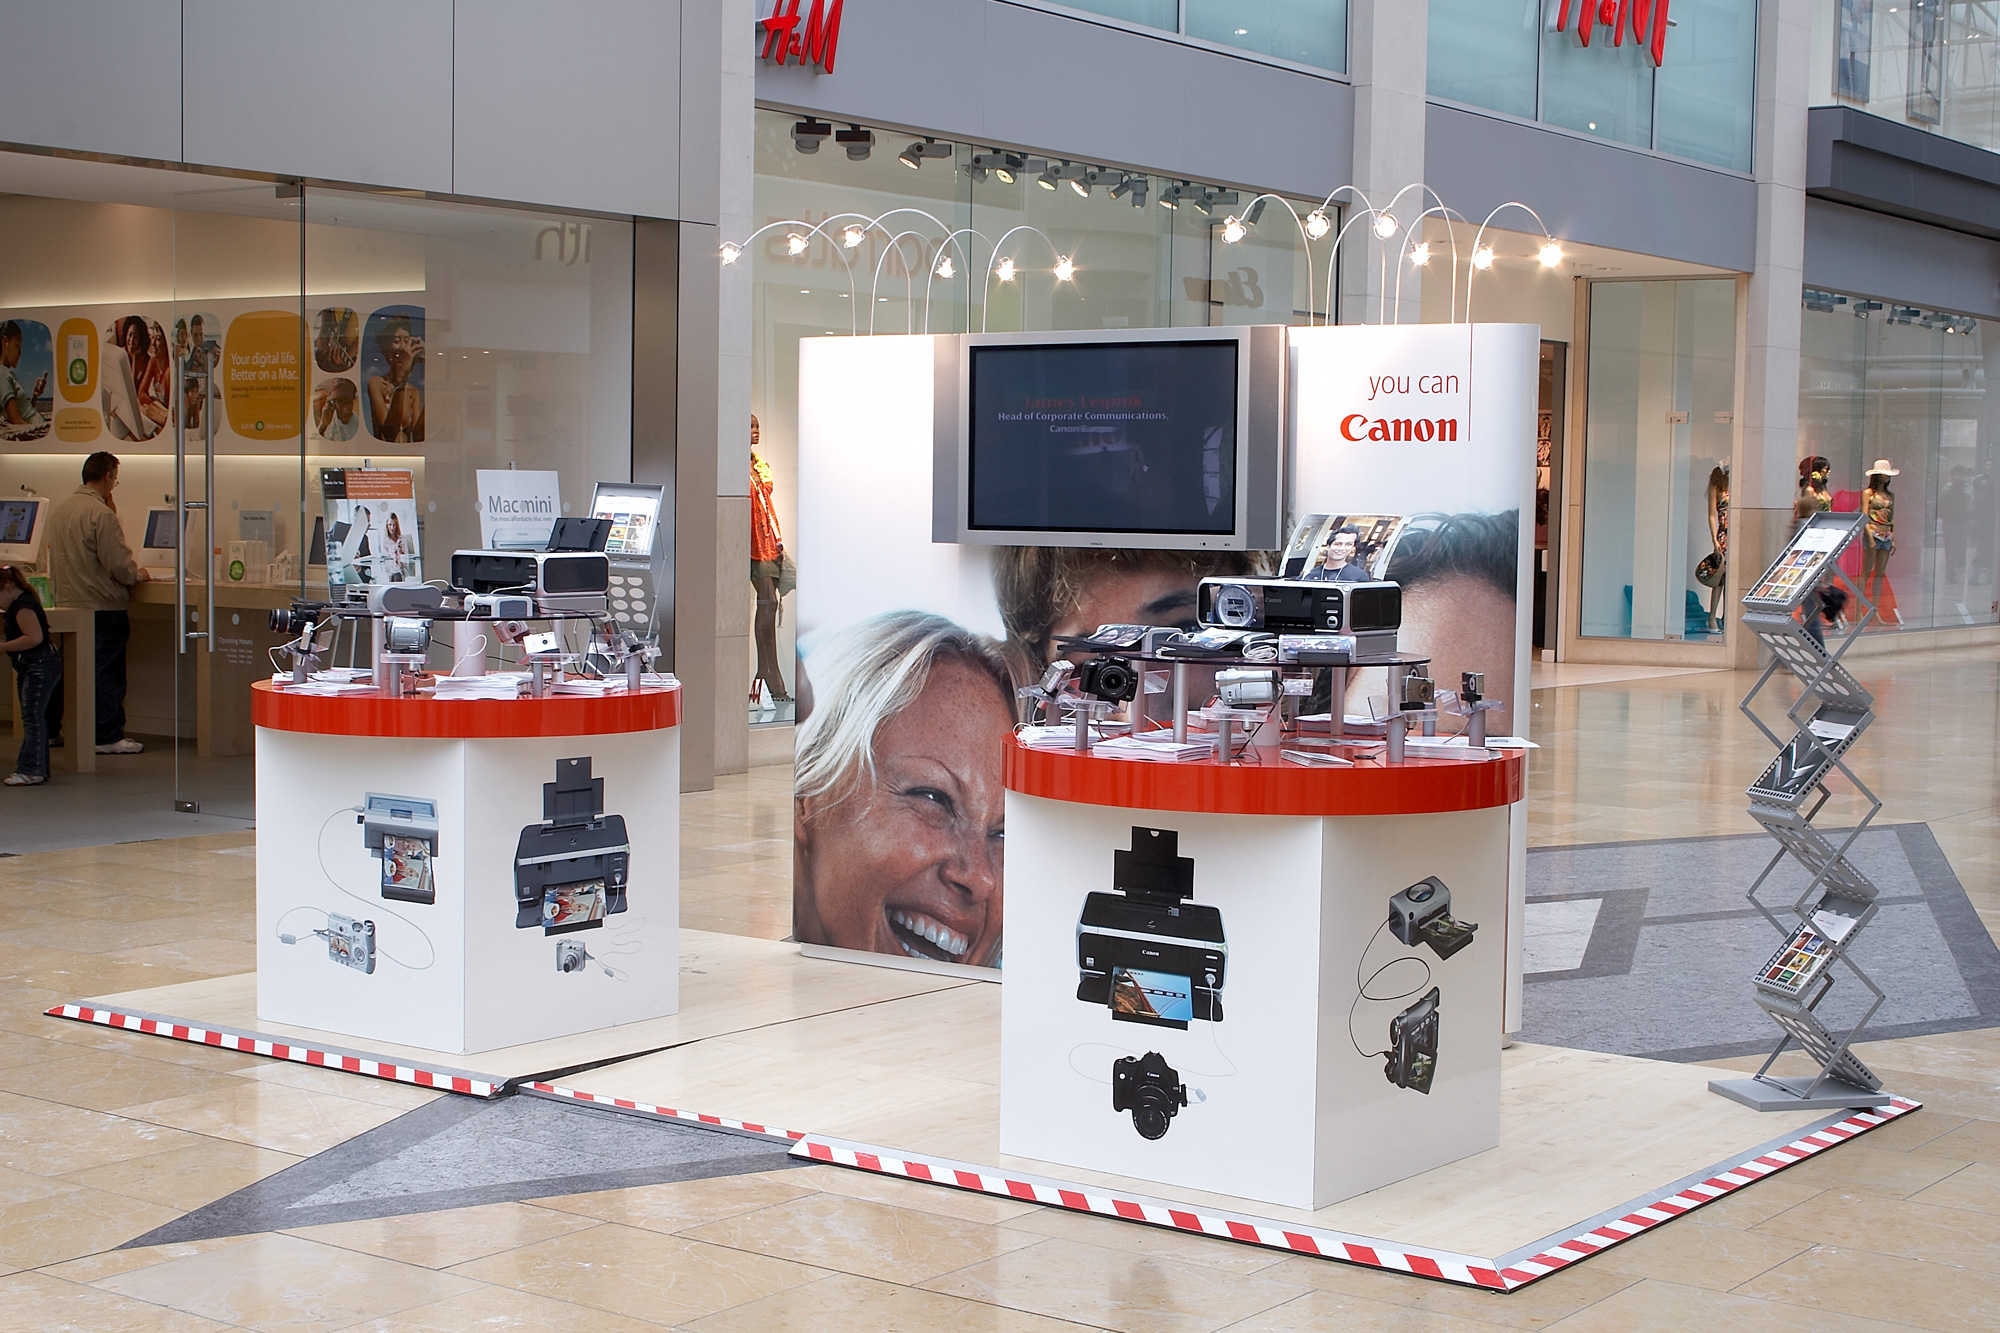 Canon roadshow event design